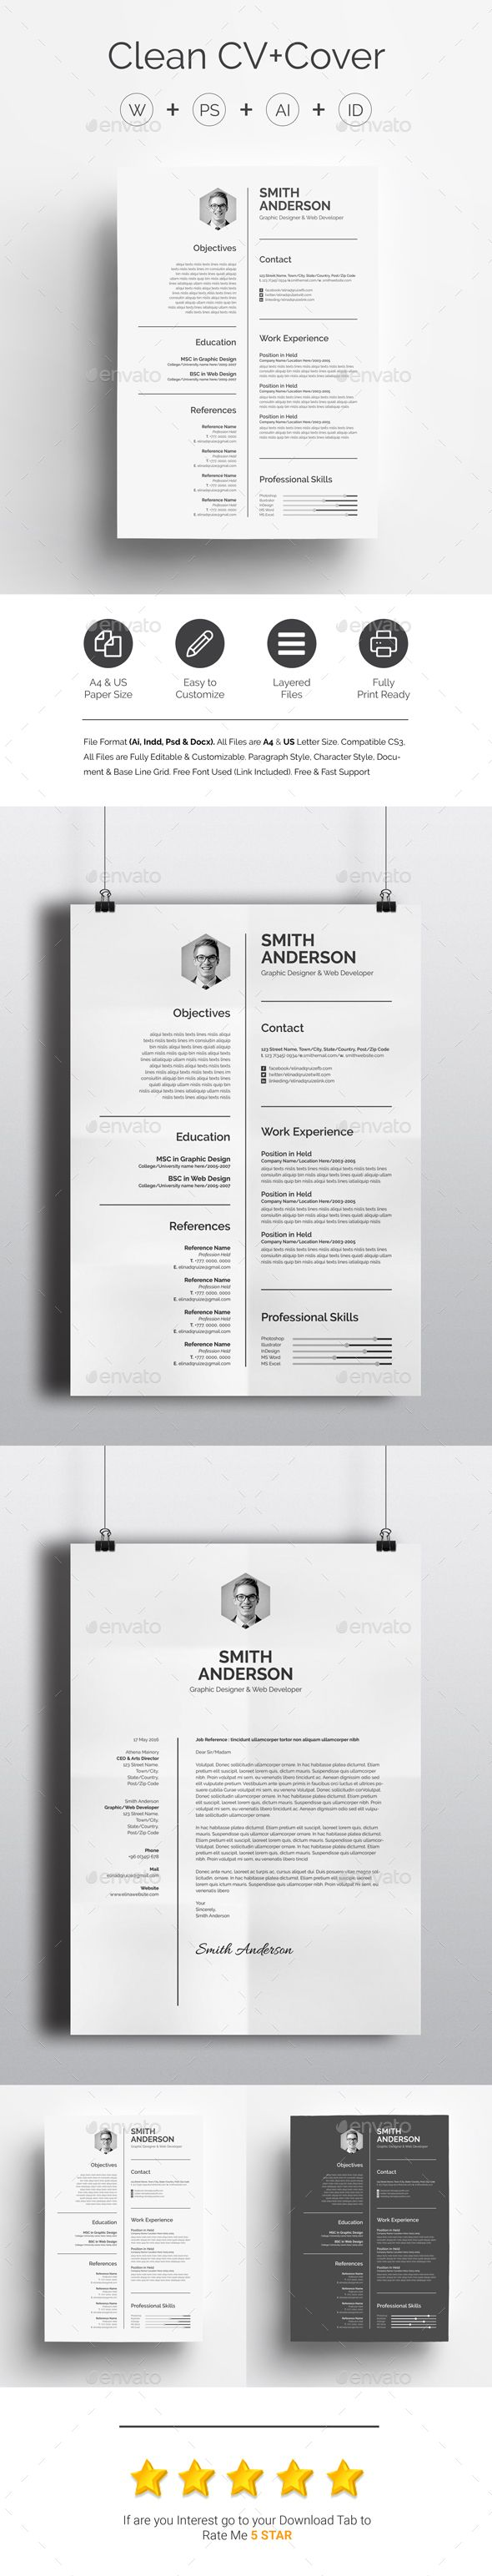 Clean Cv Cover Template Psd Vector Eps Indesign Indd Ai